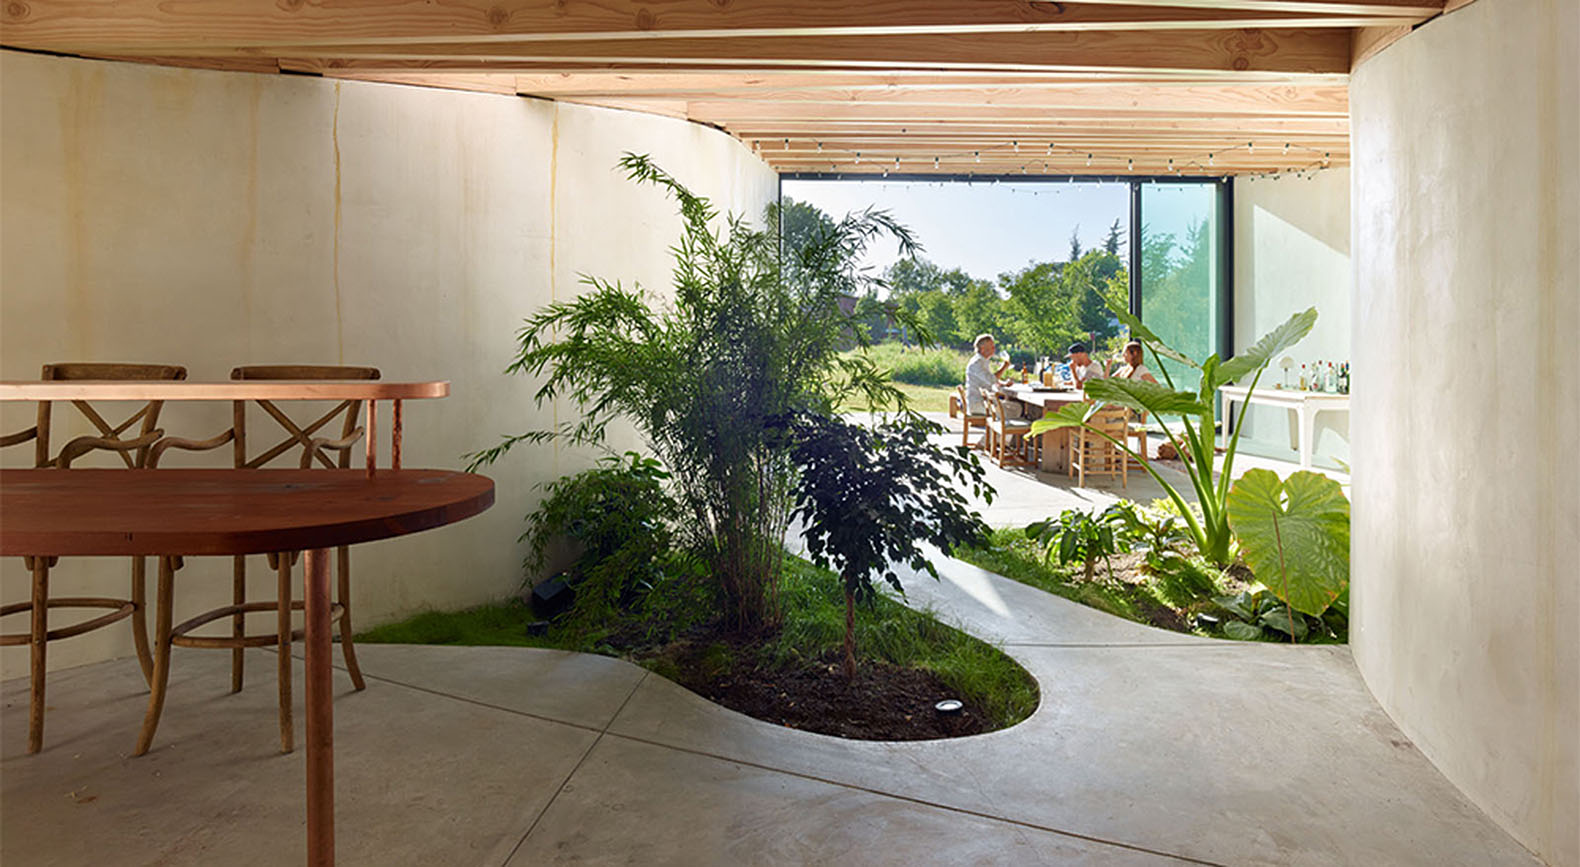 A daylit extension with a lush indoor garden grows out of an casper mork ulnes meier rd house artists studio northern california green workwithnaturefo